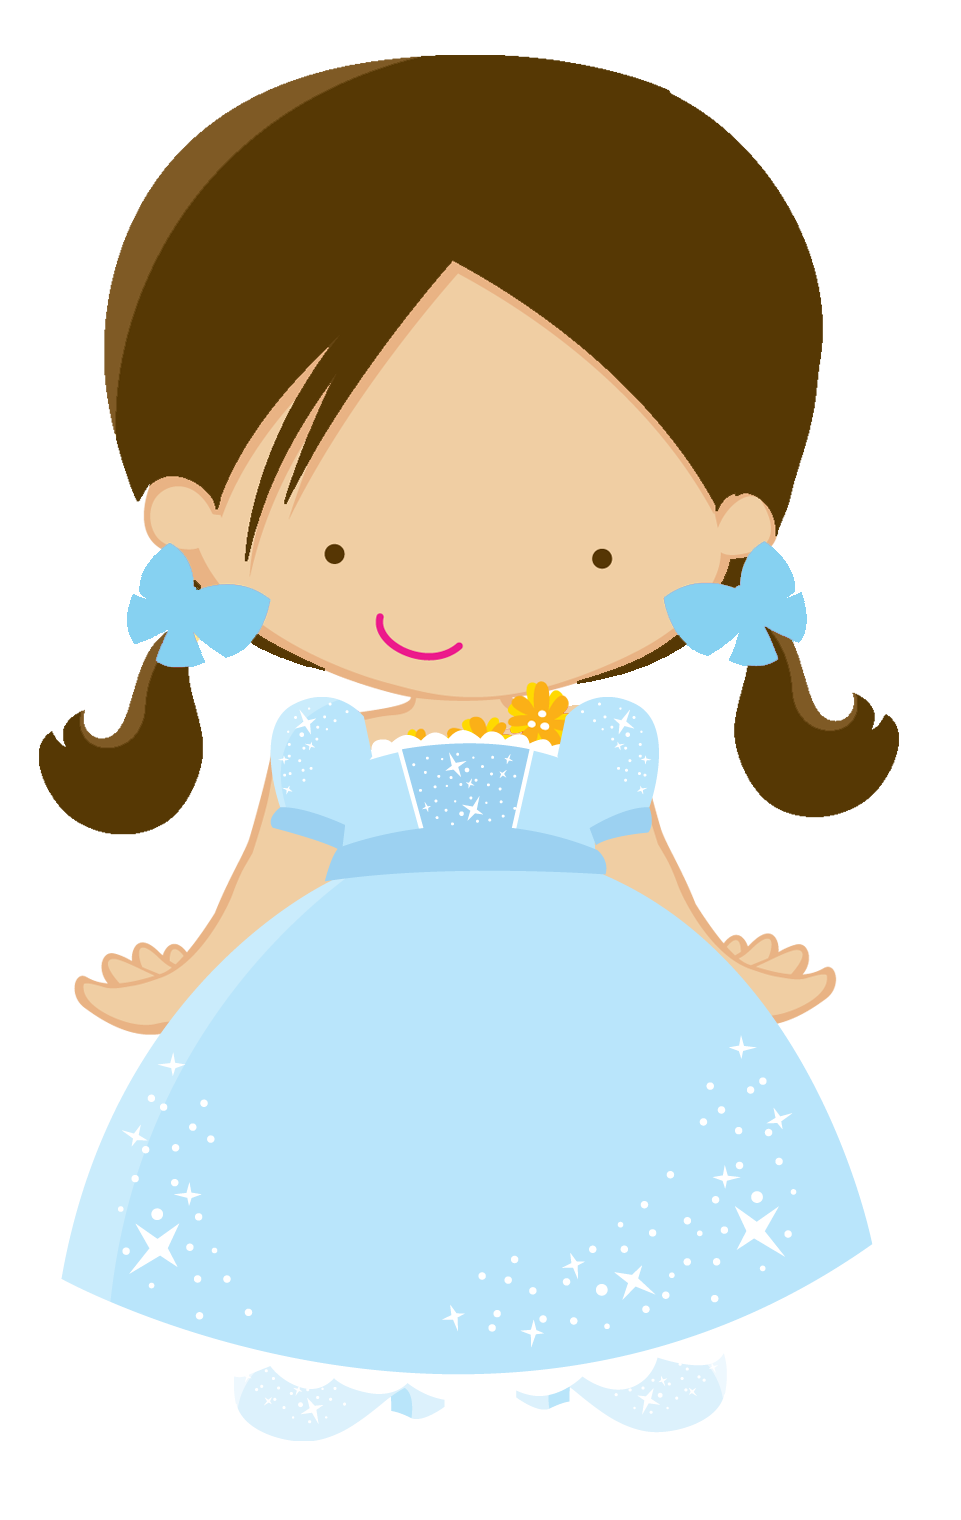 Png images of blonde blowing out birthday candles. Meninas lgirl minus clipart